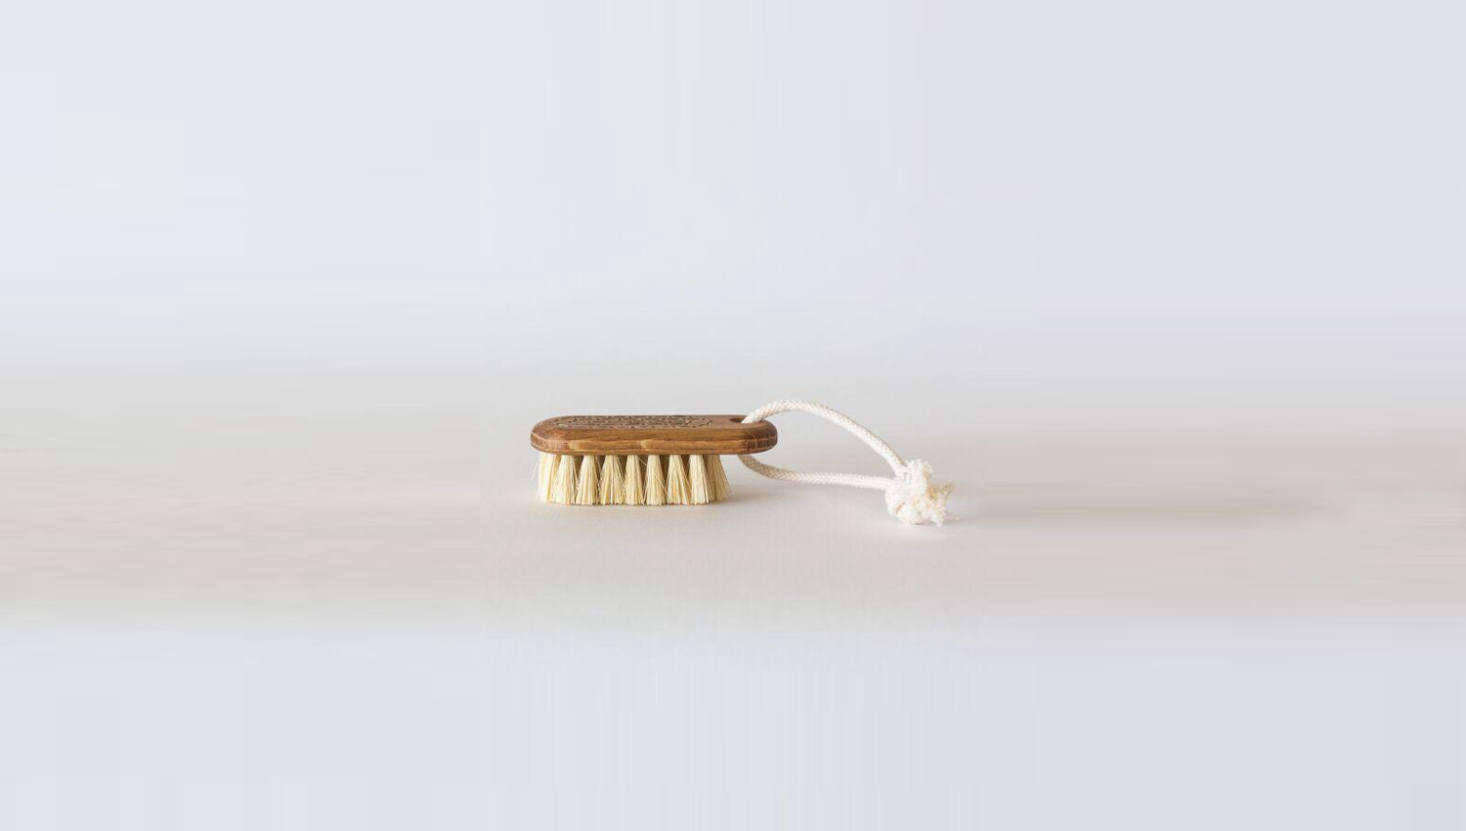 For the unpleasant reality that comes with tending the garden: a Small Nail Brush by Iris Hantverk is $ from Garden Objects.